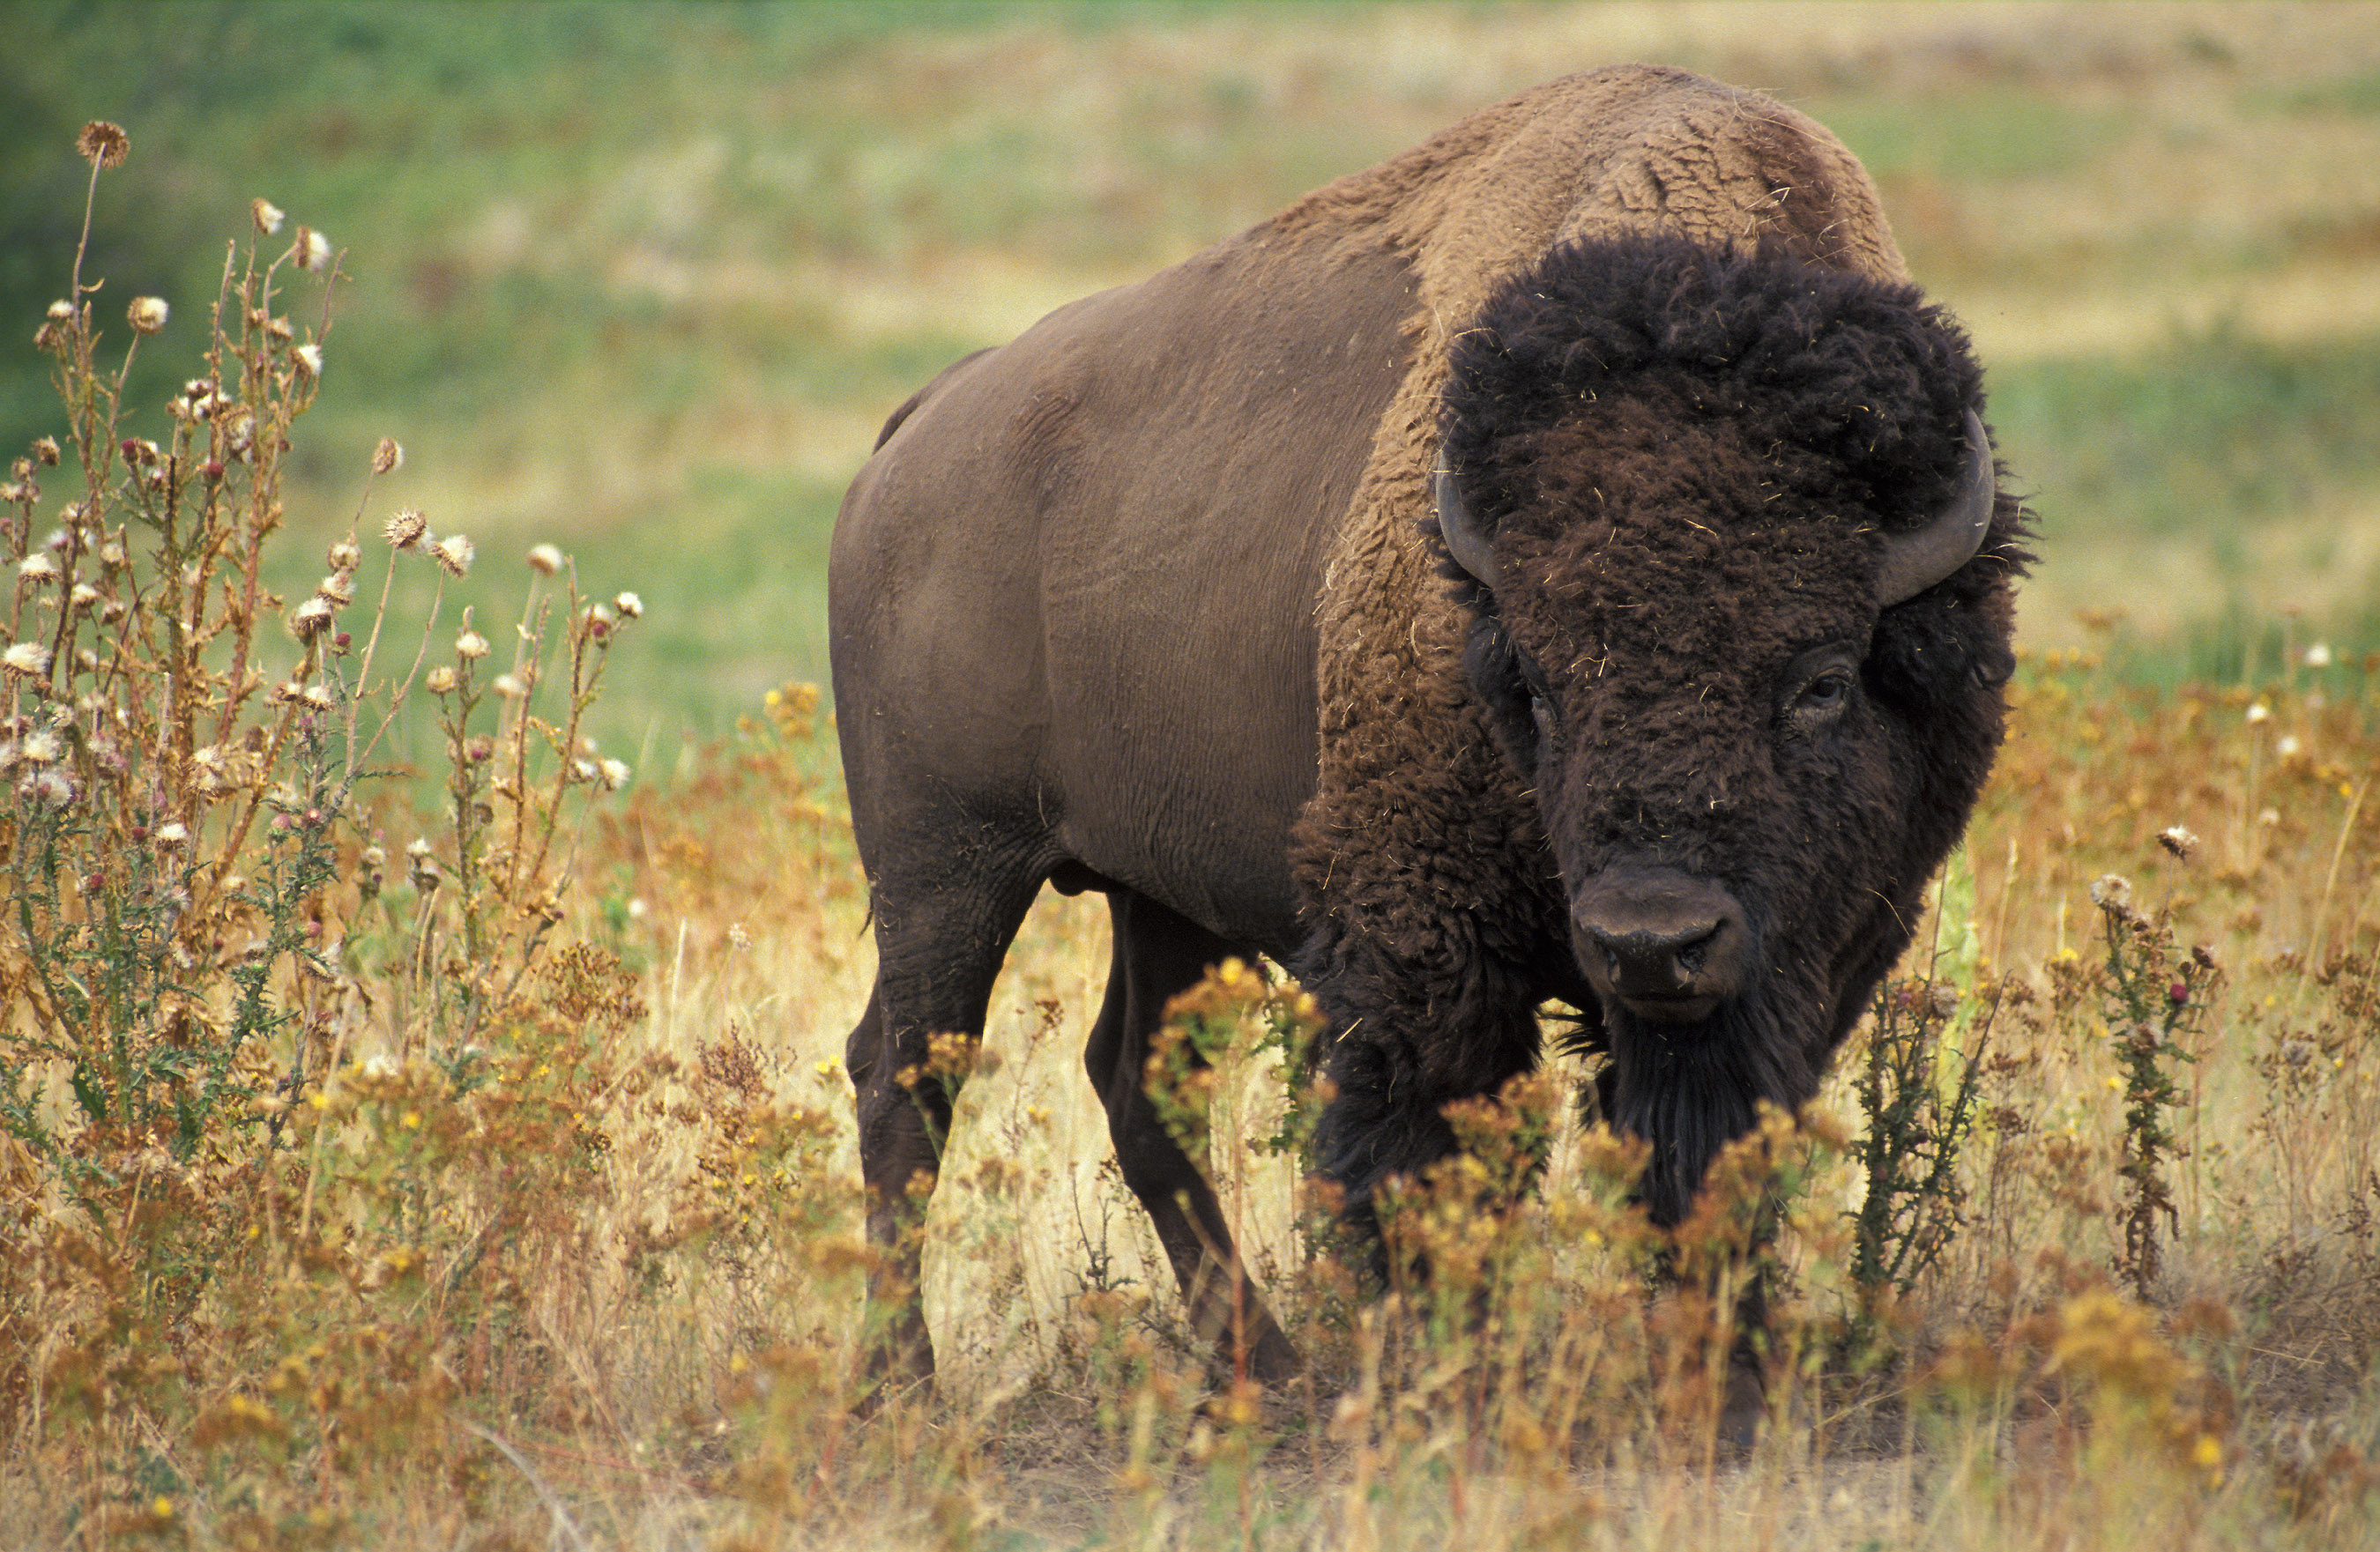 https://upload.wikimedia.org/wikipedia/commons/8/8d/American_bison_k5680-1.jpg